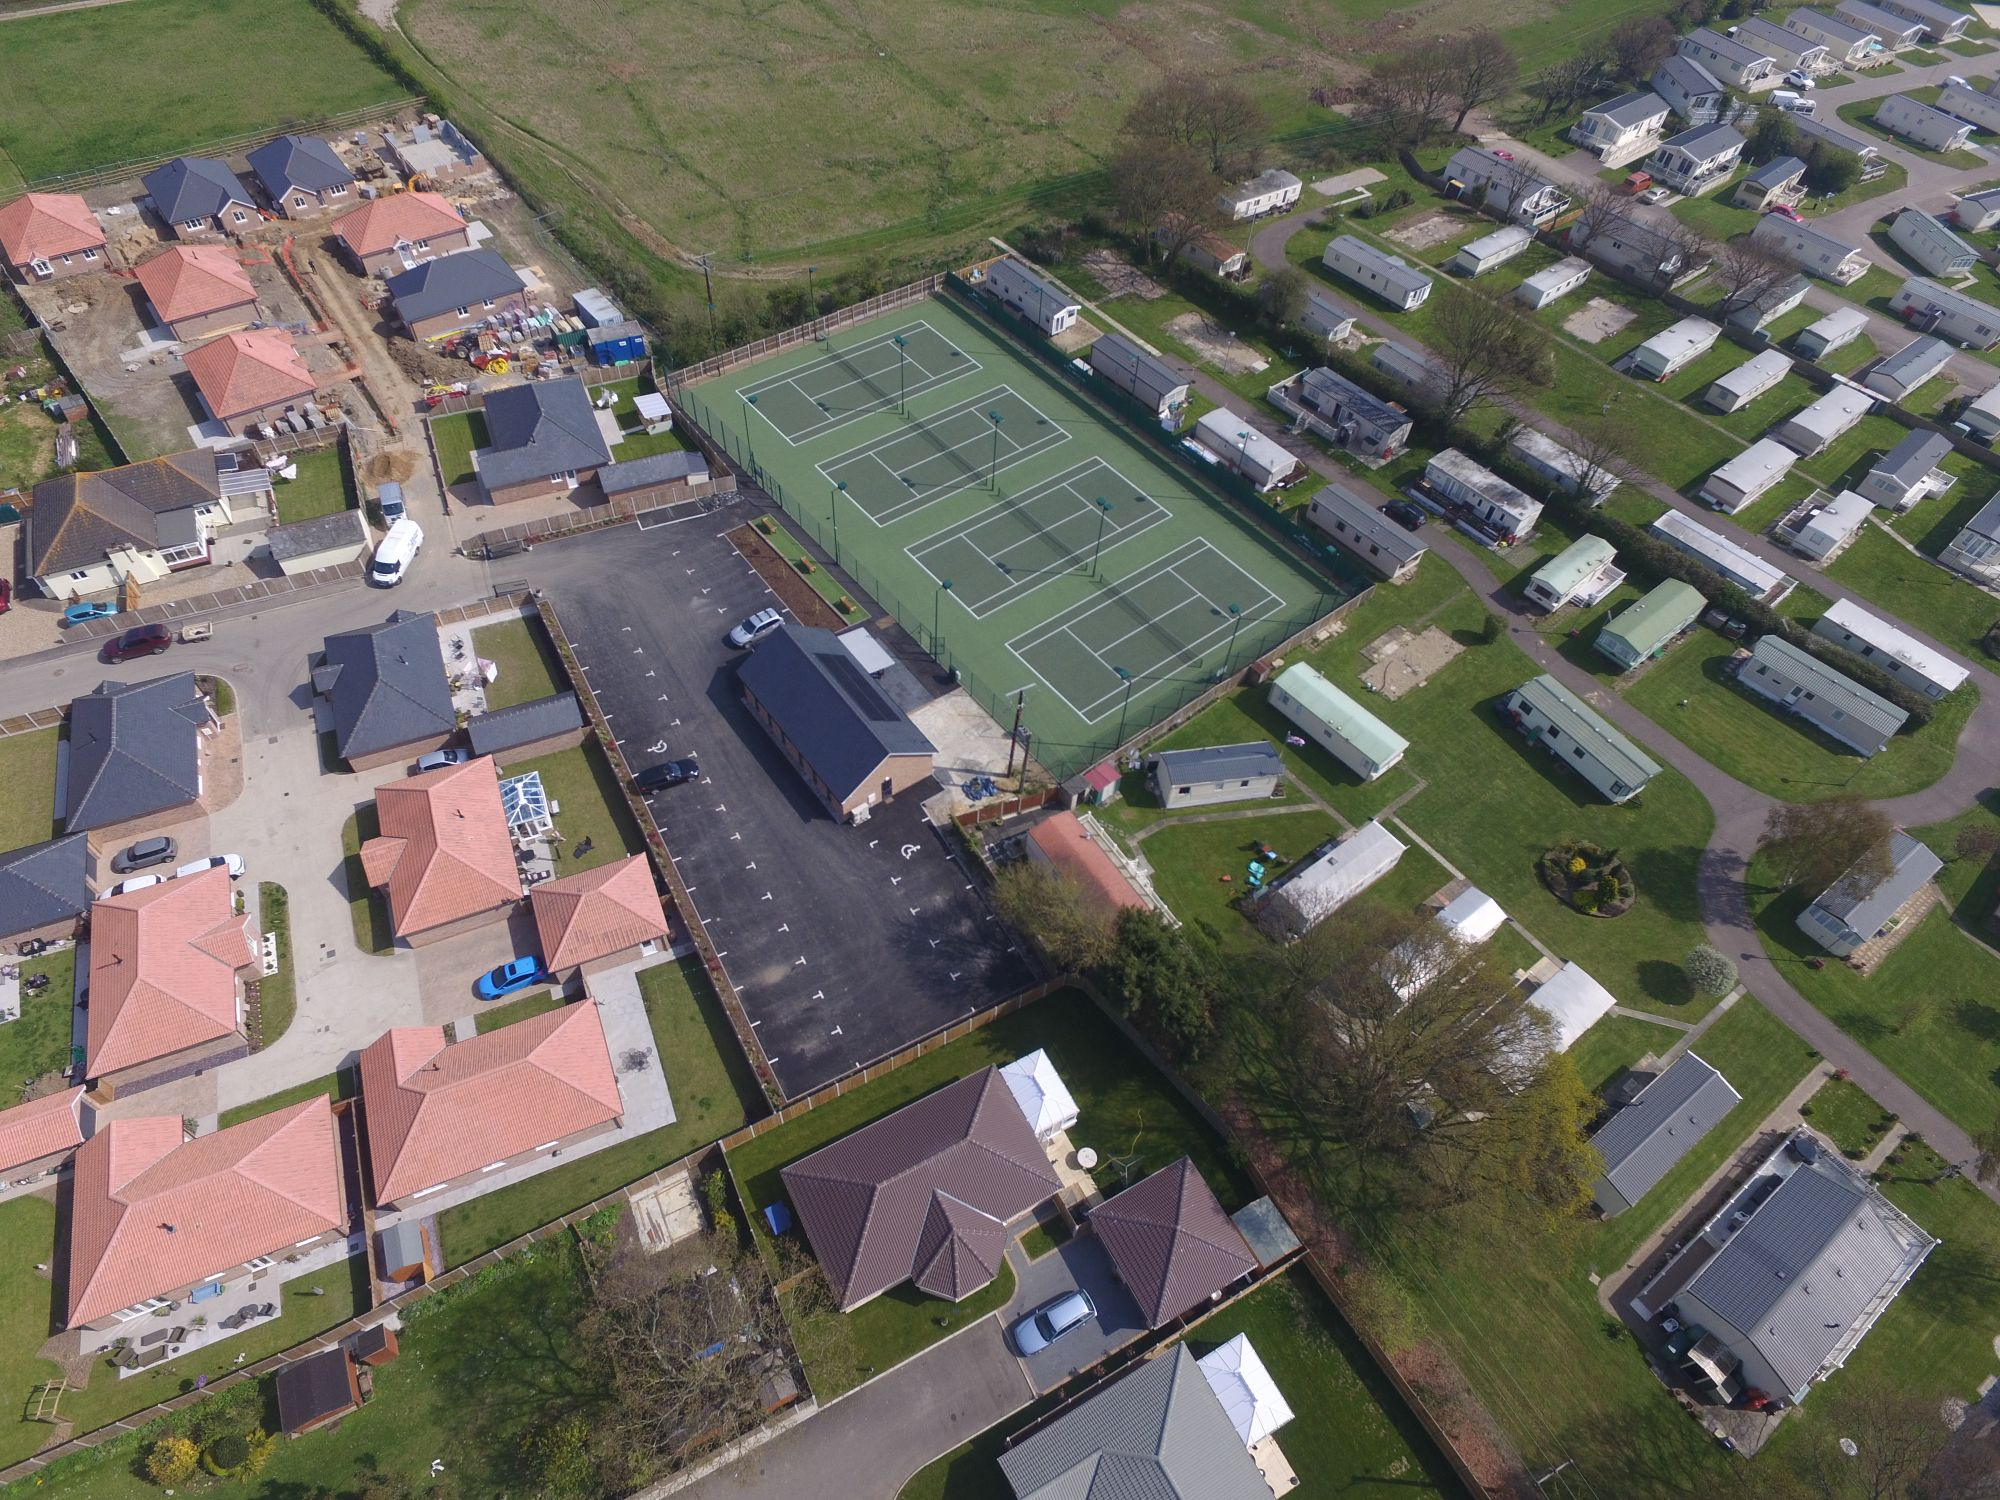 These tennis court surfaces with protective fencing were sensitively designed to sit comfortably within a popular residential area of Essex